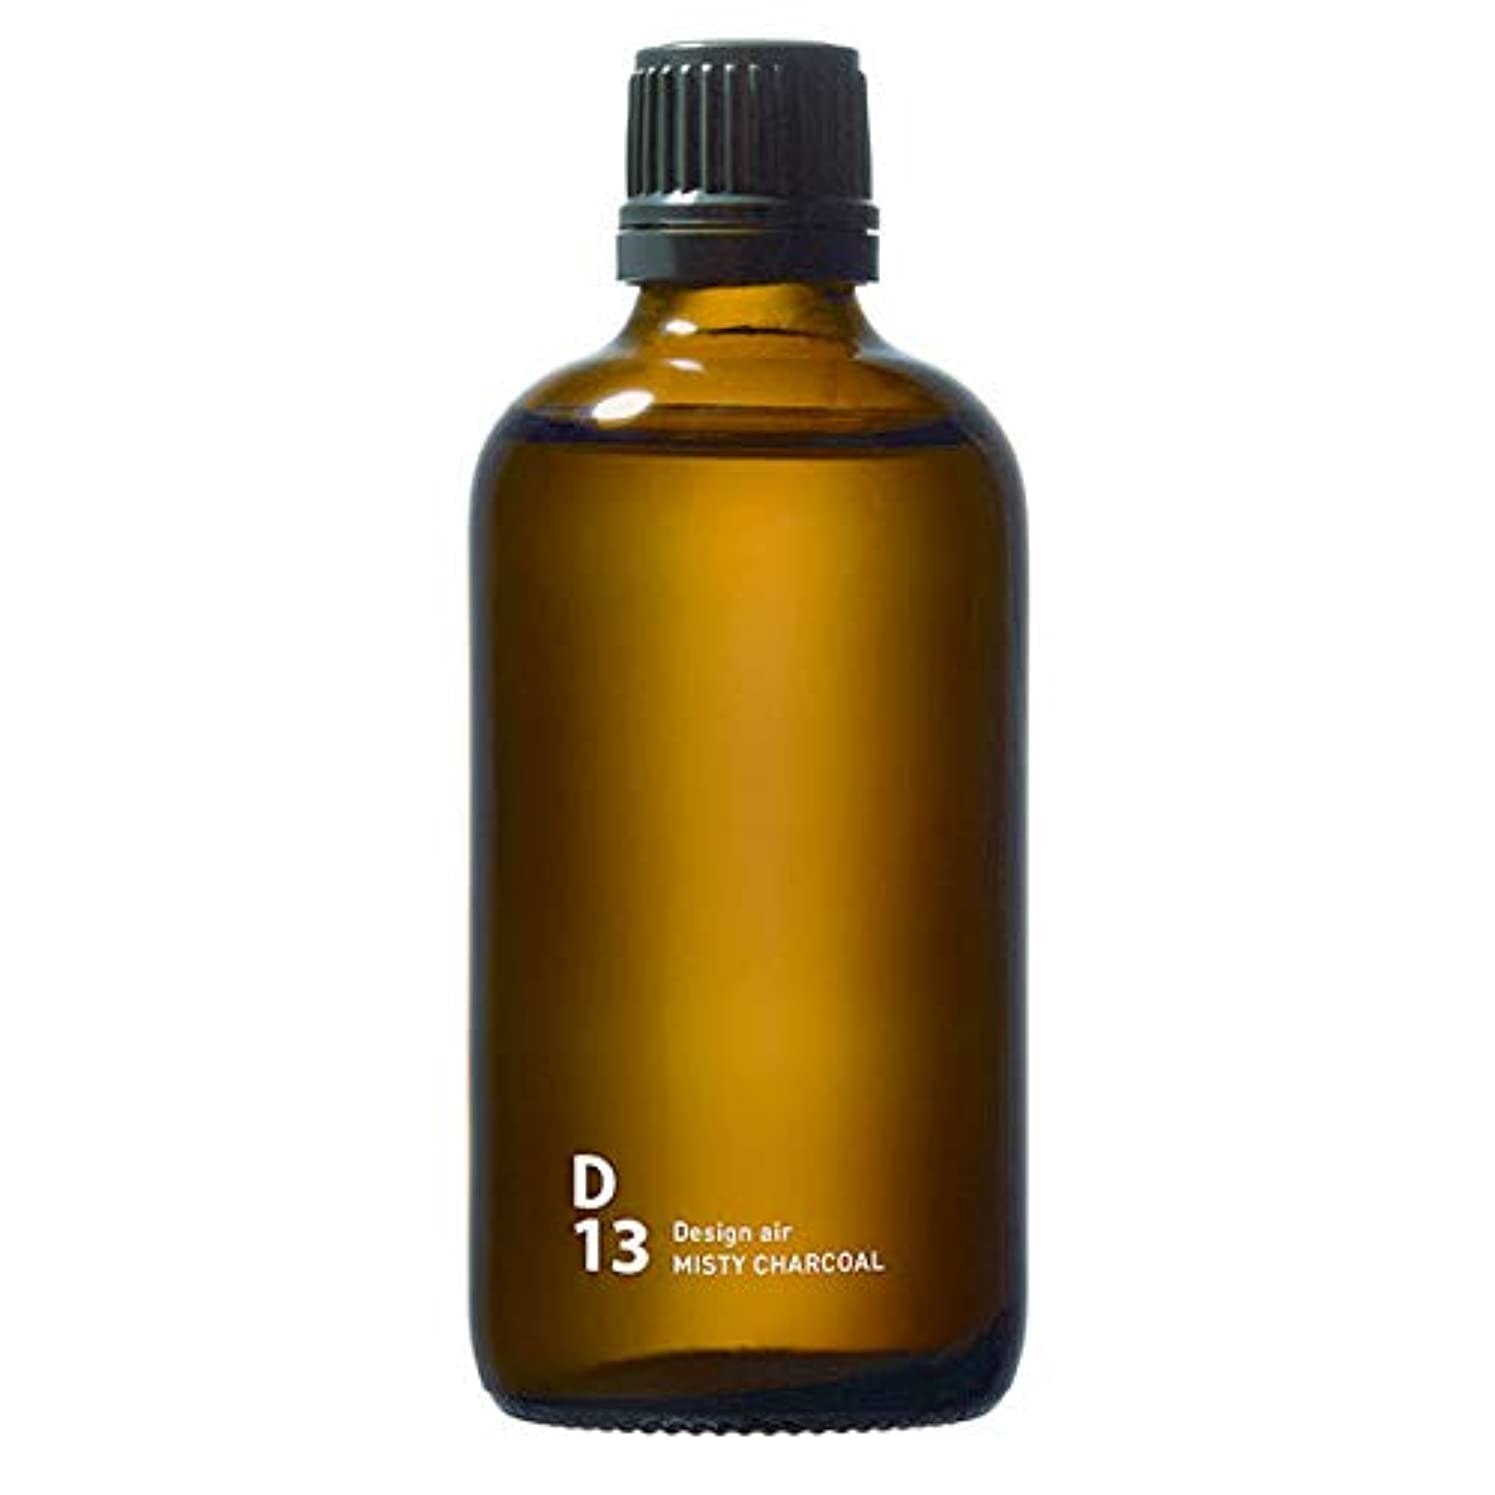 機械的に飢えた架空のD13 MISTY CHARCOAL piezo aroma oil 100ml